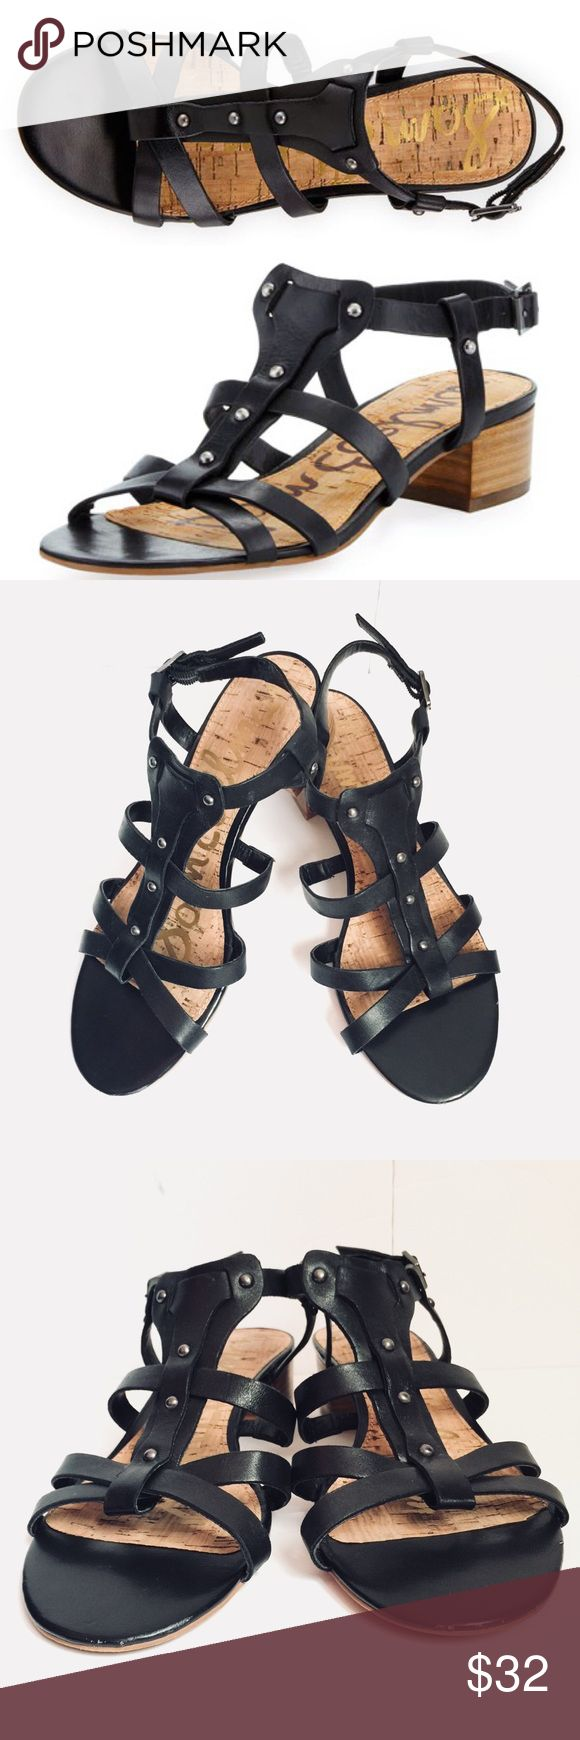 "SAM EDELMAN ANGELA STUDDED GLADIATOR SANDALS * Leather Sam Edelman sandal with studs. * Stacked 1 1/2"" block heel. * T-strap vamp. Size8.5""M * Adjustable heel strap. * Leather upper, Cork insole. * ""Angela"" is imported. Sam Edelman Shoes Sandals"